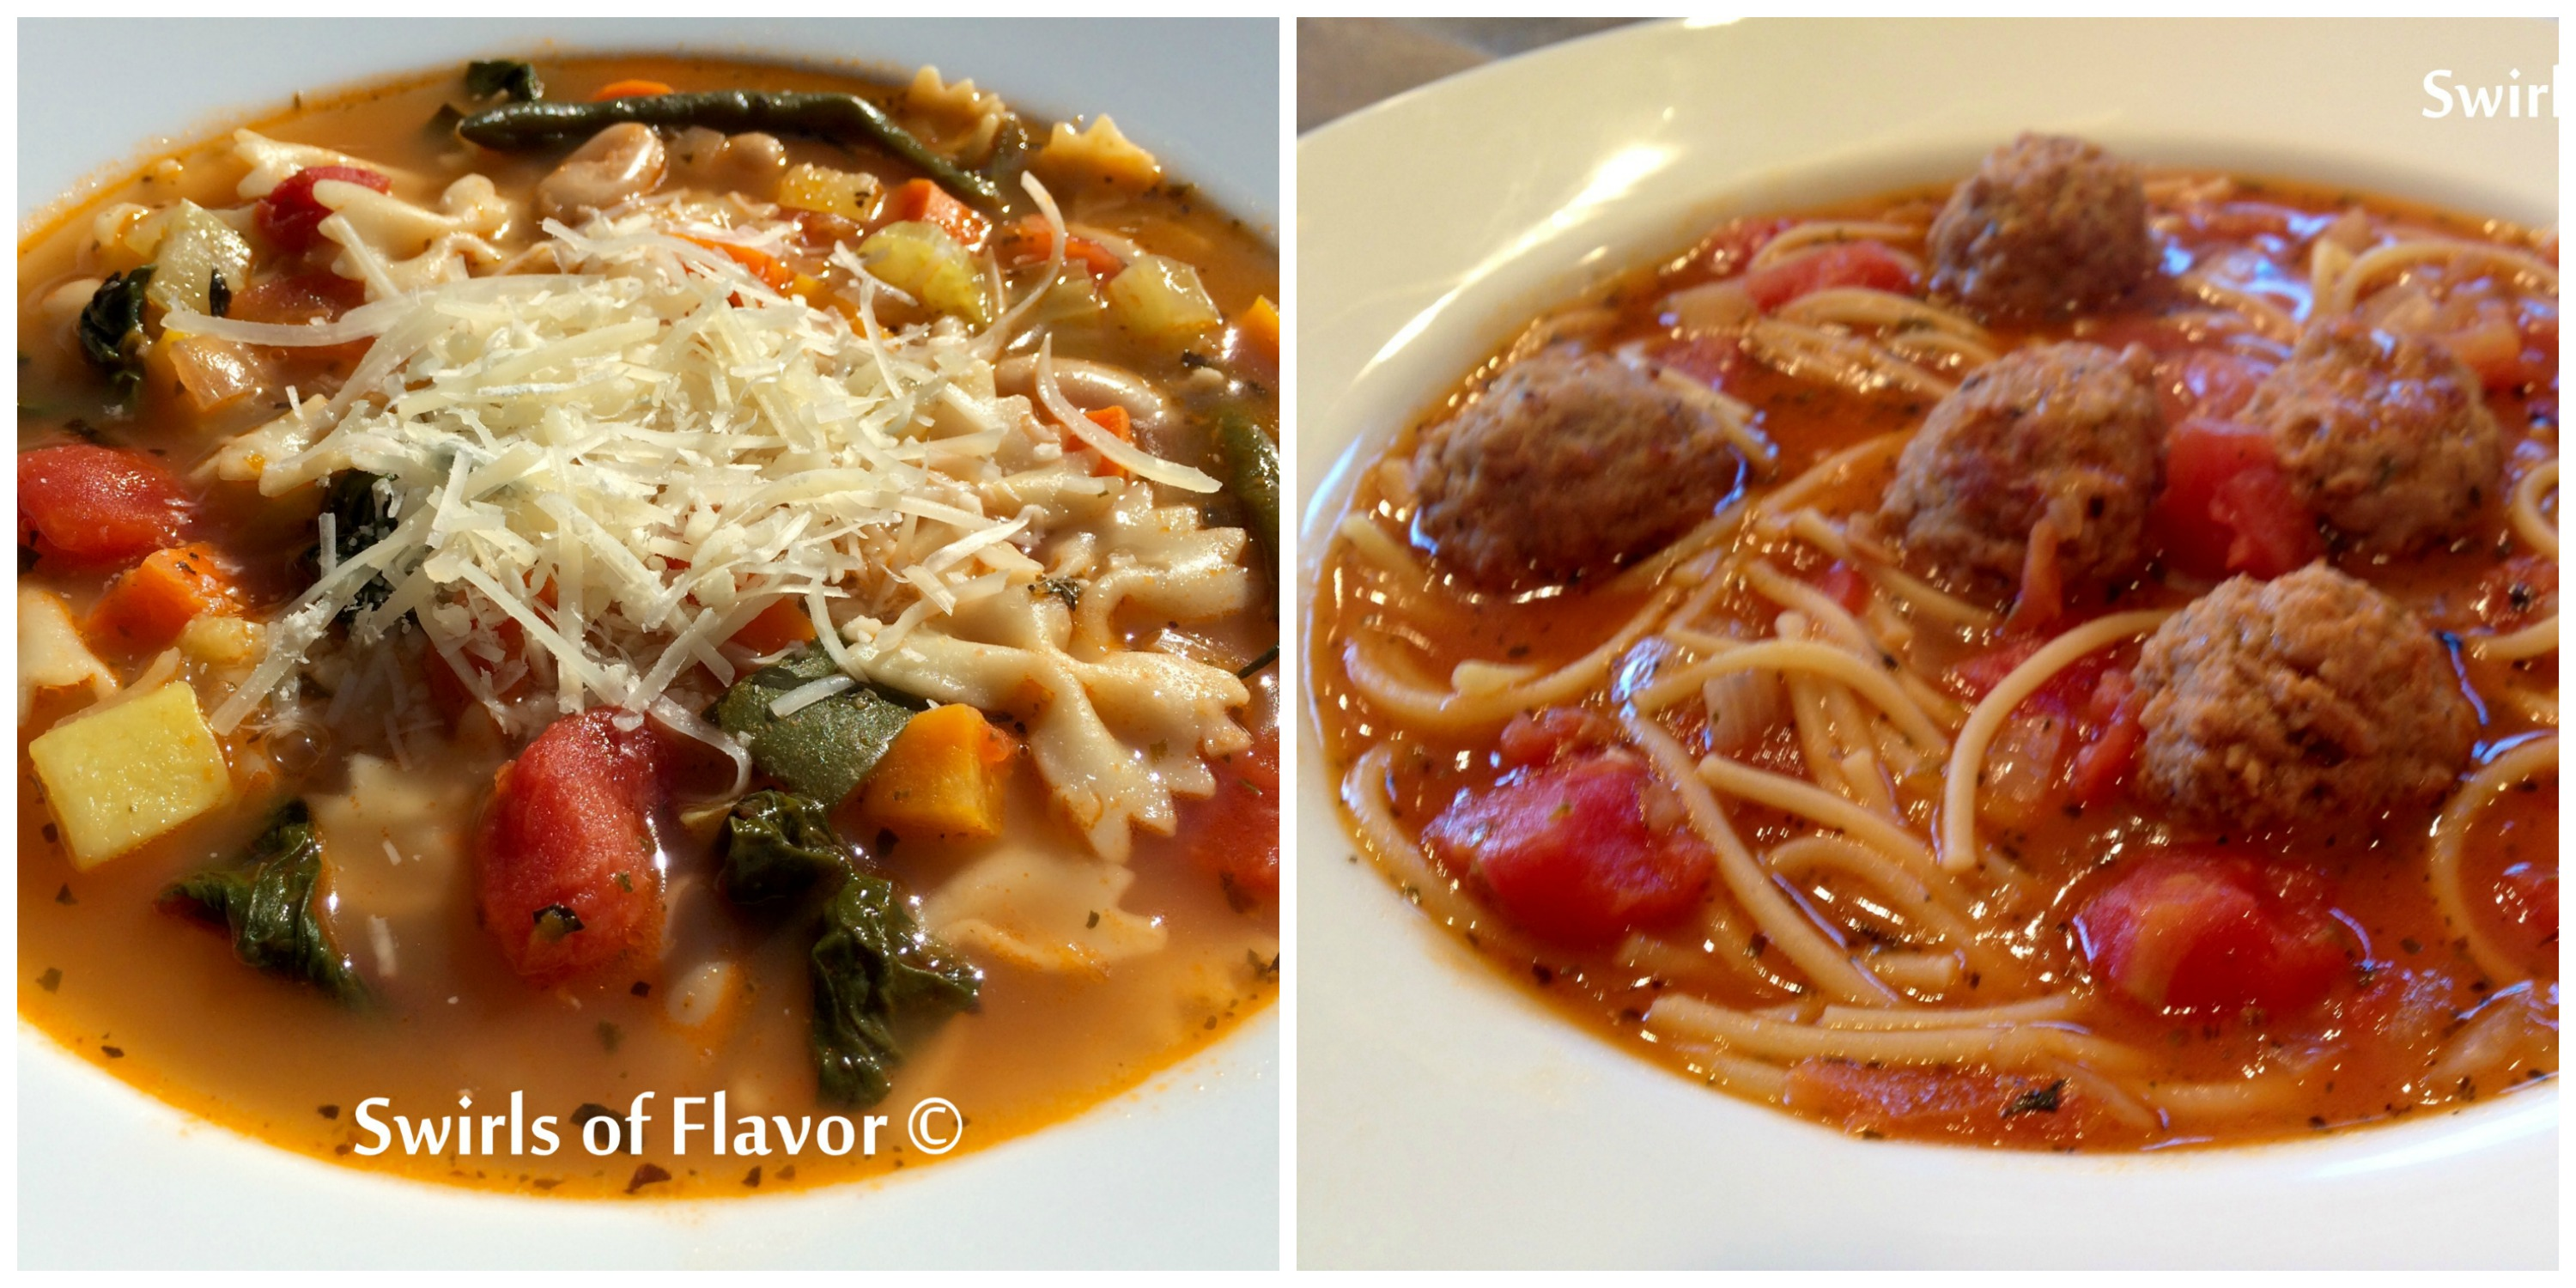 Pesto Minestrone and Spaghetti and Meatball Soup